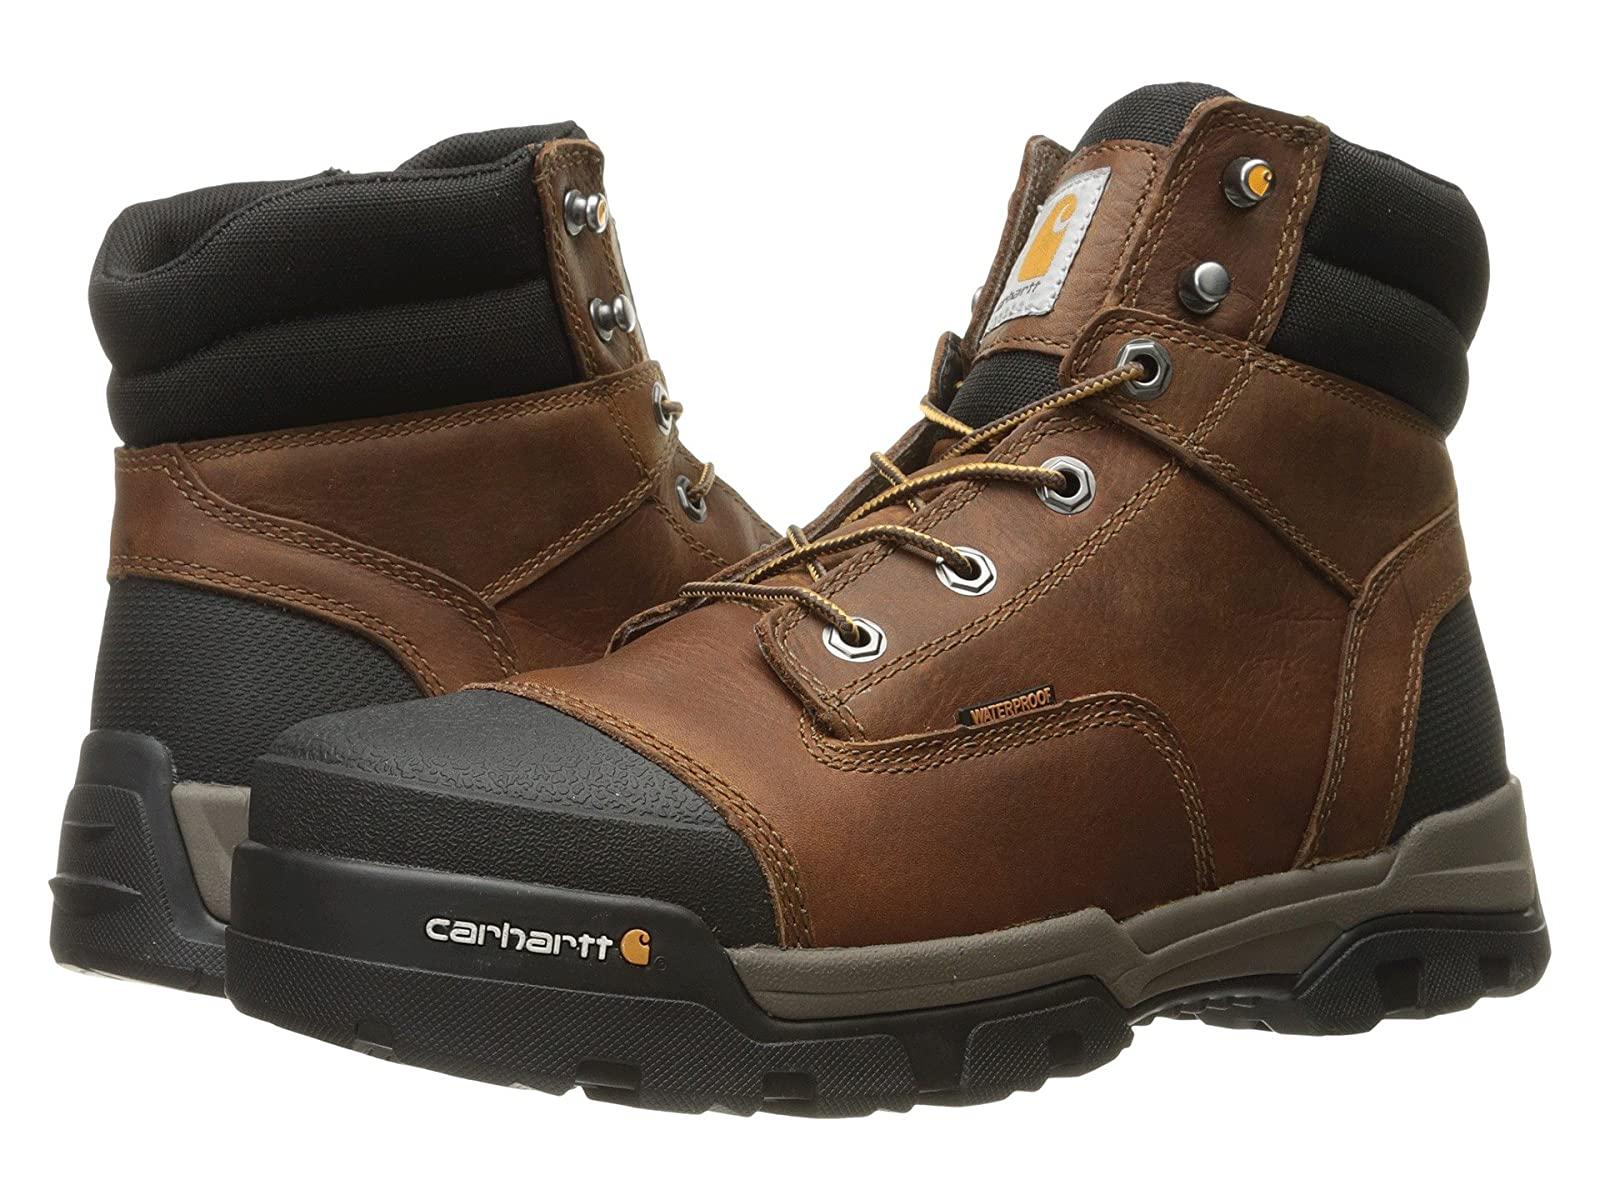 "Carhartt 6"" Ground Force Waterproof Non-Safety Toe Work BootSelling fashionable and eye-catching shoes"